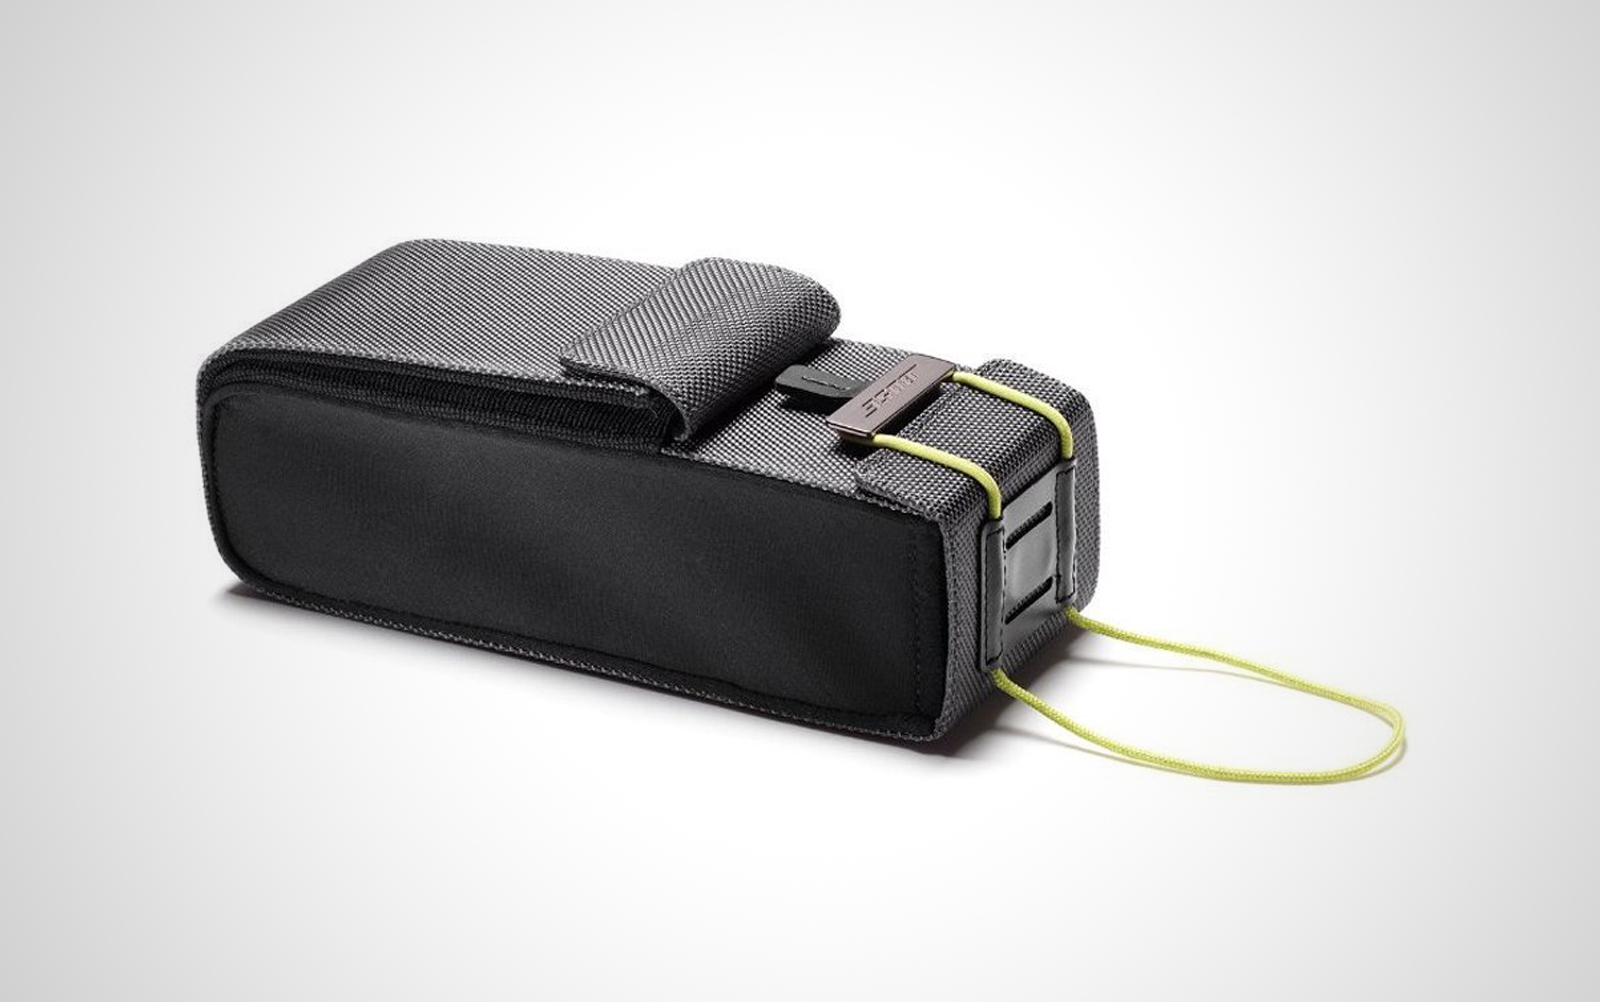 Bose-Soundlink-mini-bag_01